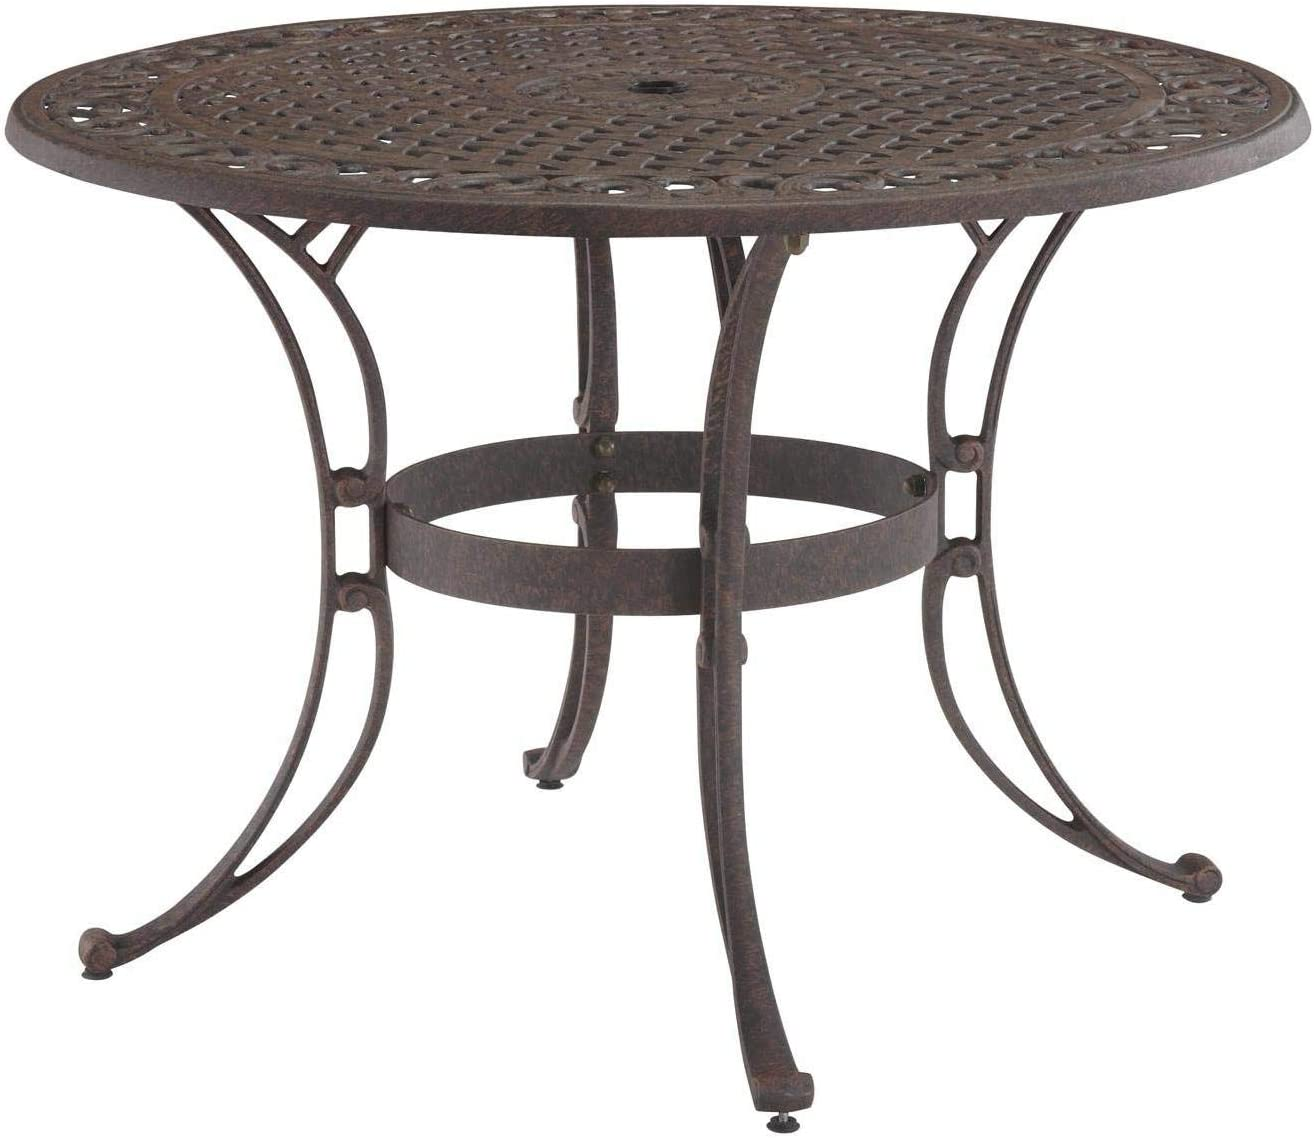 Biscayne Bronze 42-Inch Round Outdoor Dining Table by Home Styles